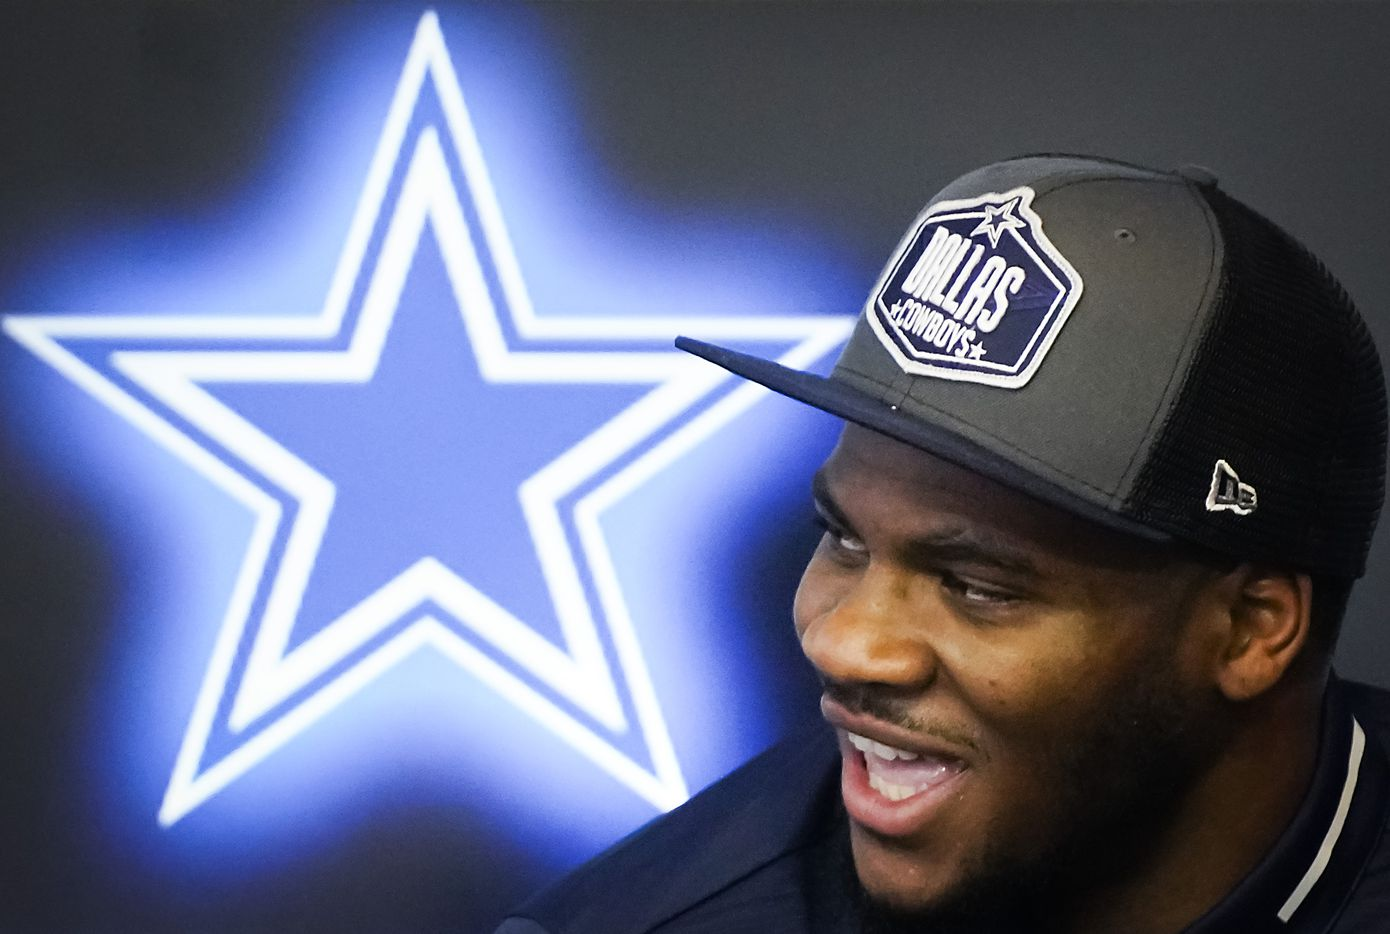 Dallas Cowboys first-round draft pick Micah Parsons laughs during a press conference introducing the linebacker from Penn State at The Star on Friday, April 30, 2021, in Frisco. (Smiley N. Pool/The Dallas Morning News)